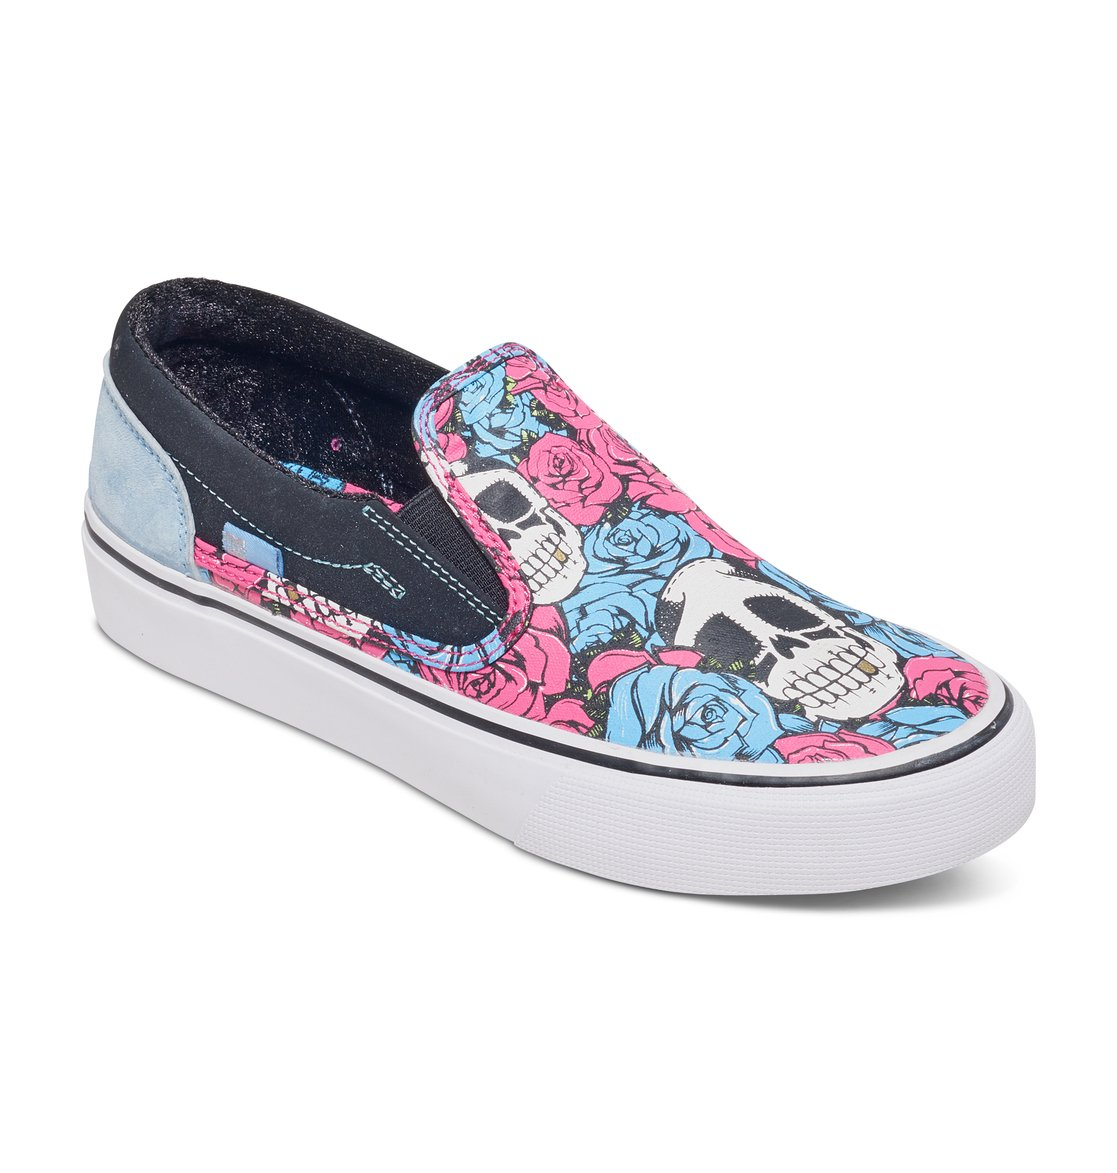 8c8aea6e59 1 Women s Trase X Taylor Reeve Slip On Shoes ADJS300129 DC Shoes